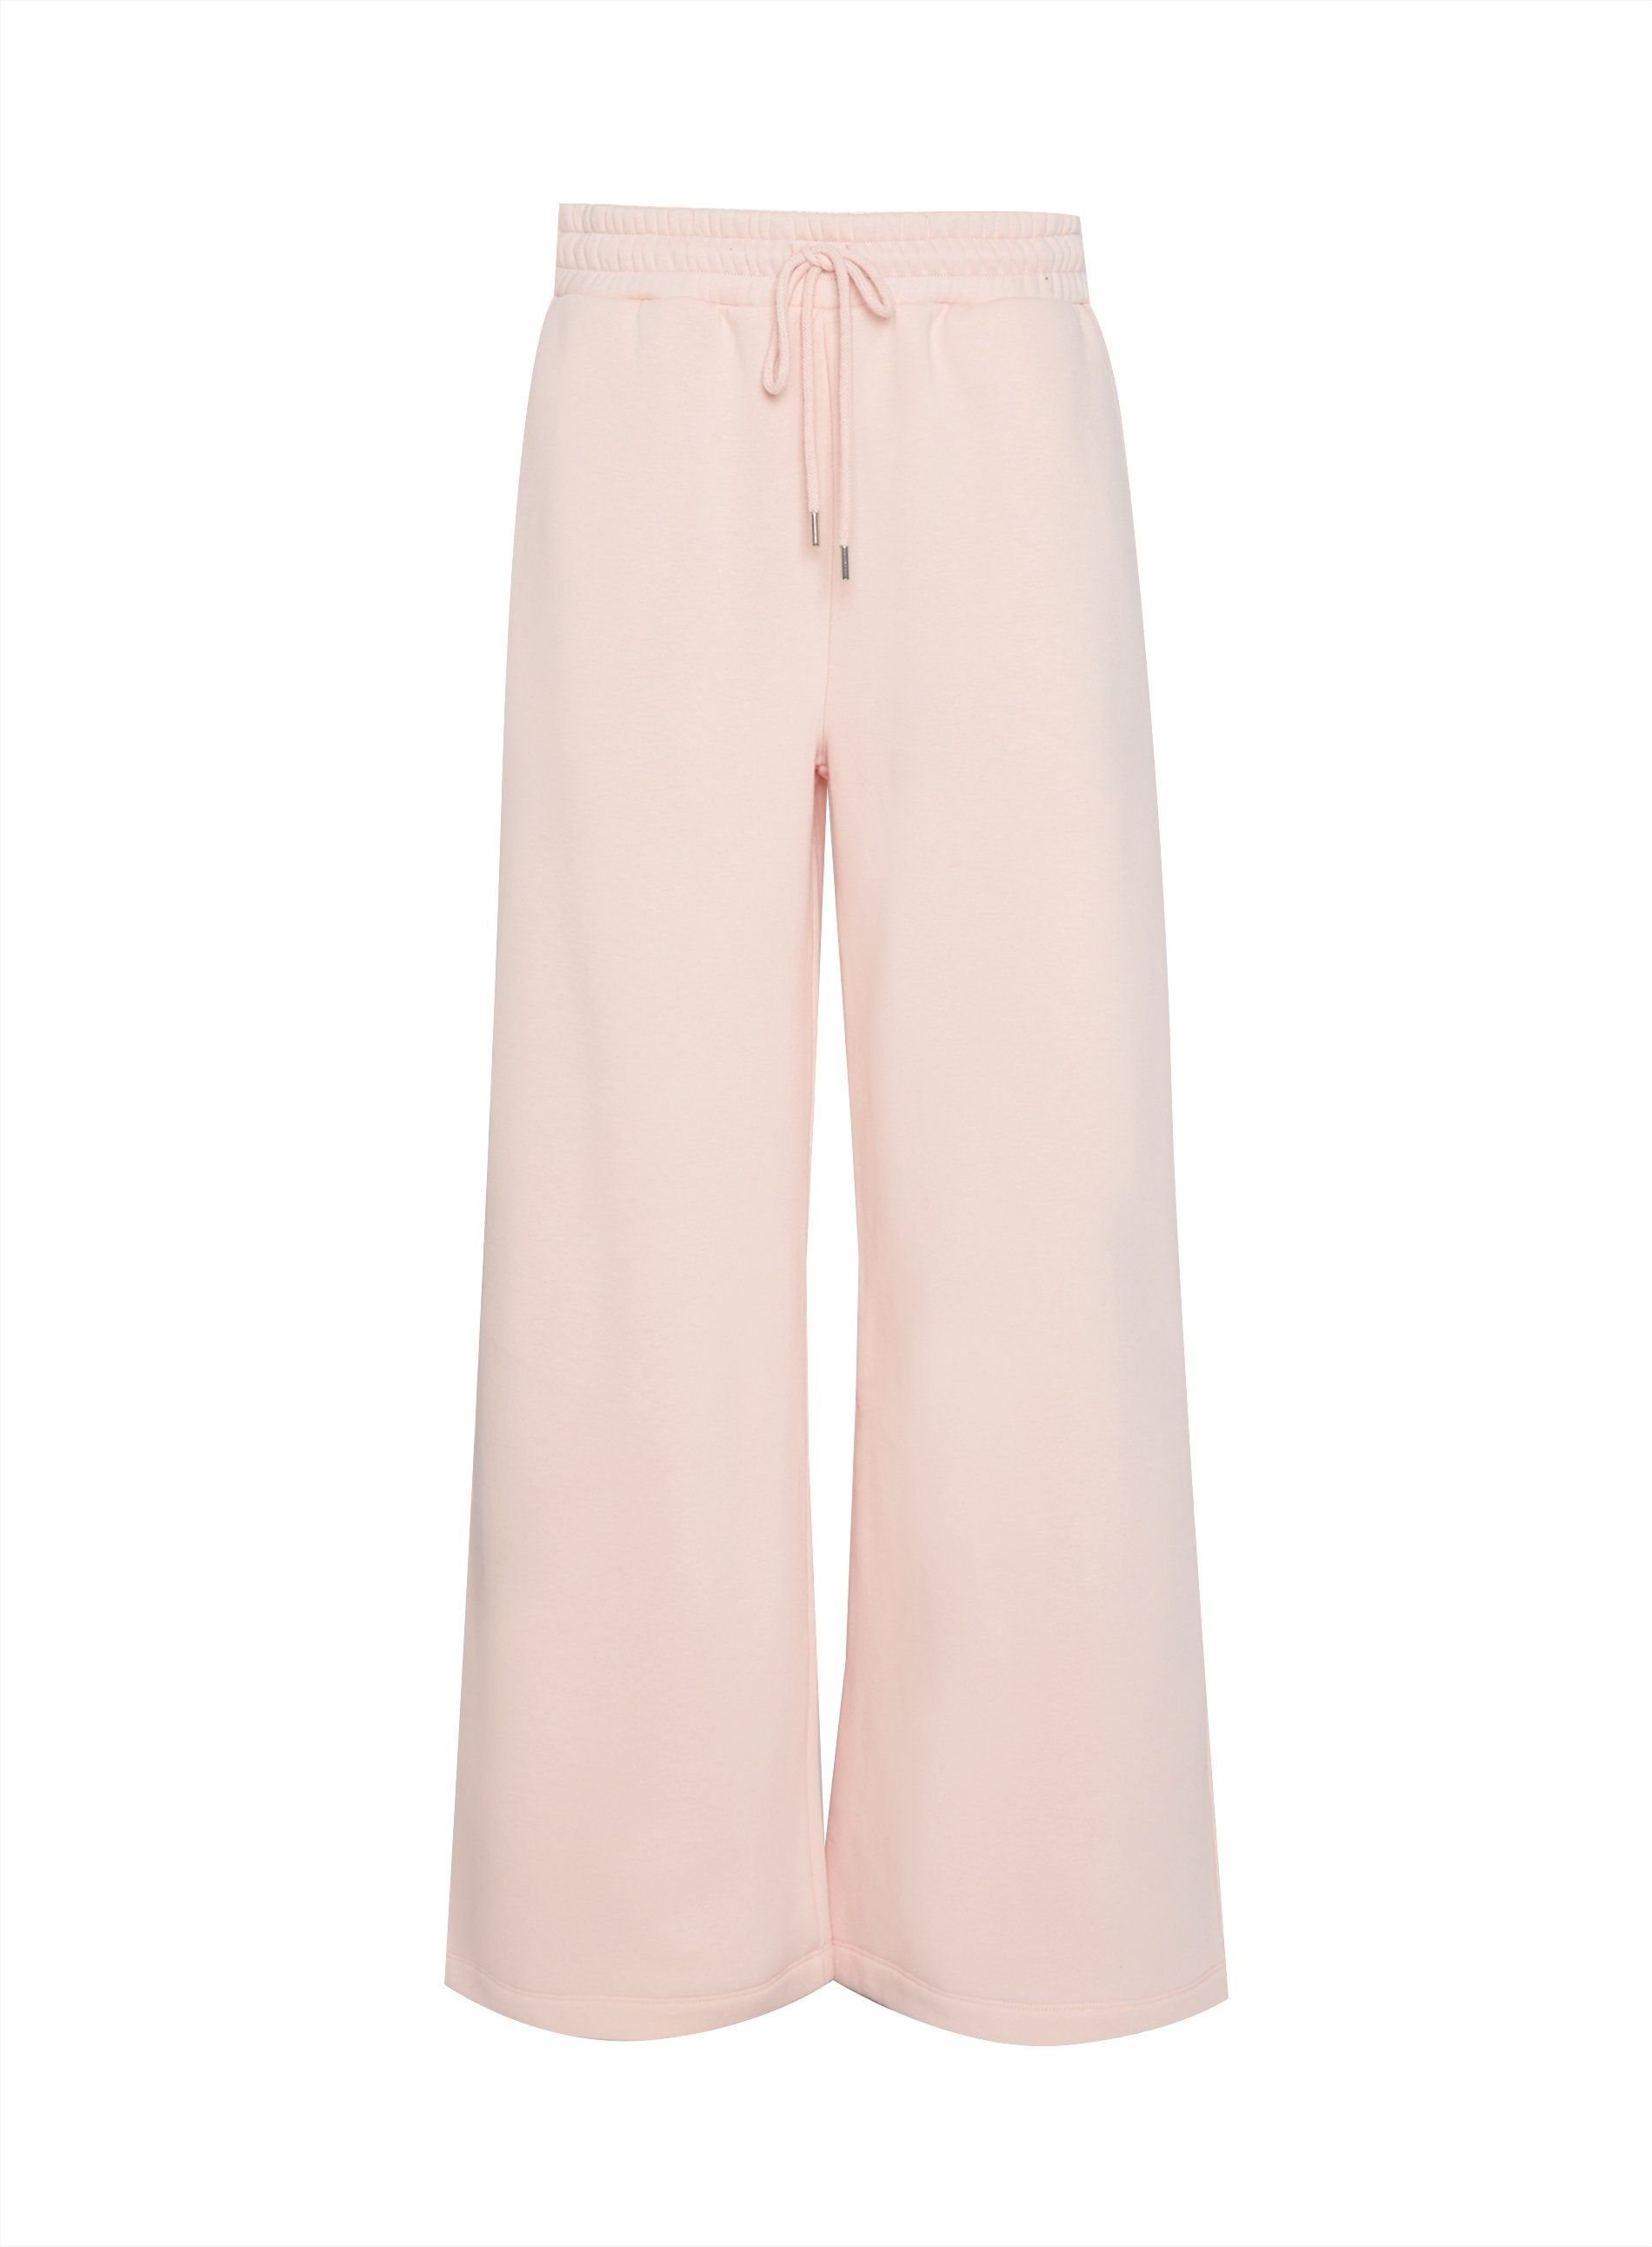 Dorothy Perkins Womens Pink Wide Leg Soft Trousers Front Tie Flare Pants Bottoms